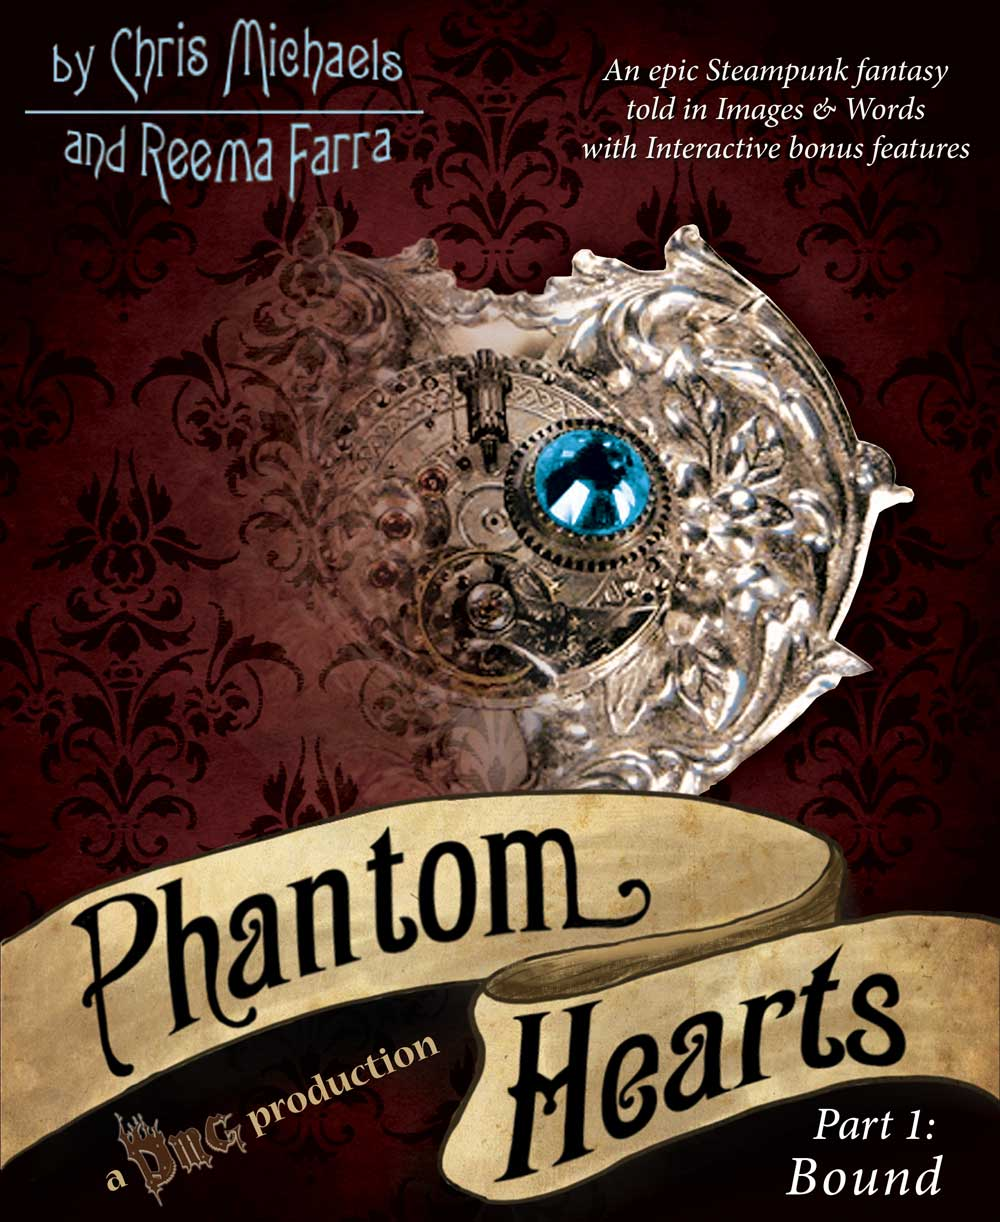 Image: Book cover from part one of the series